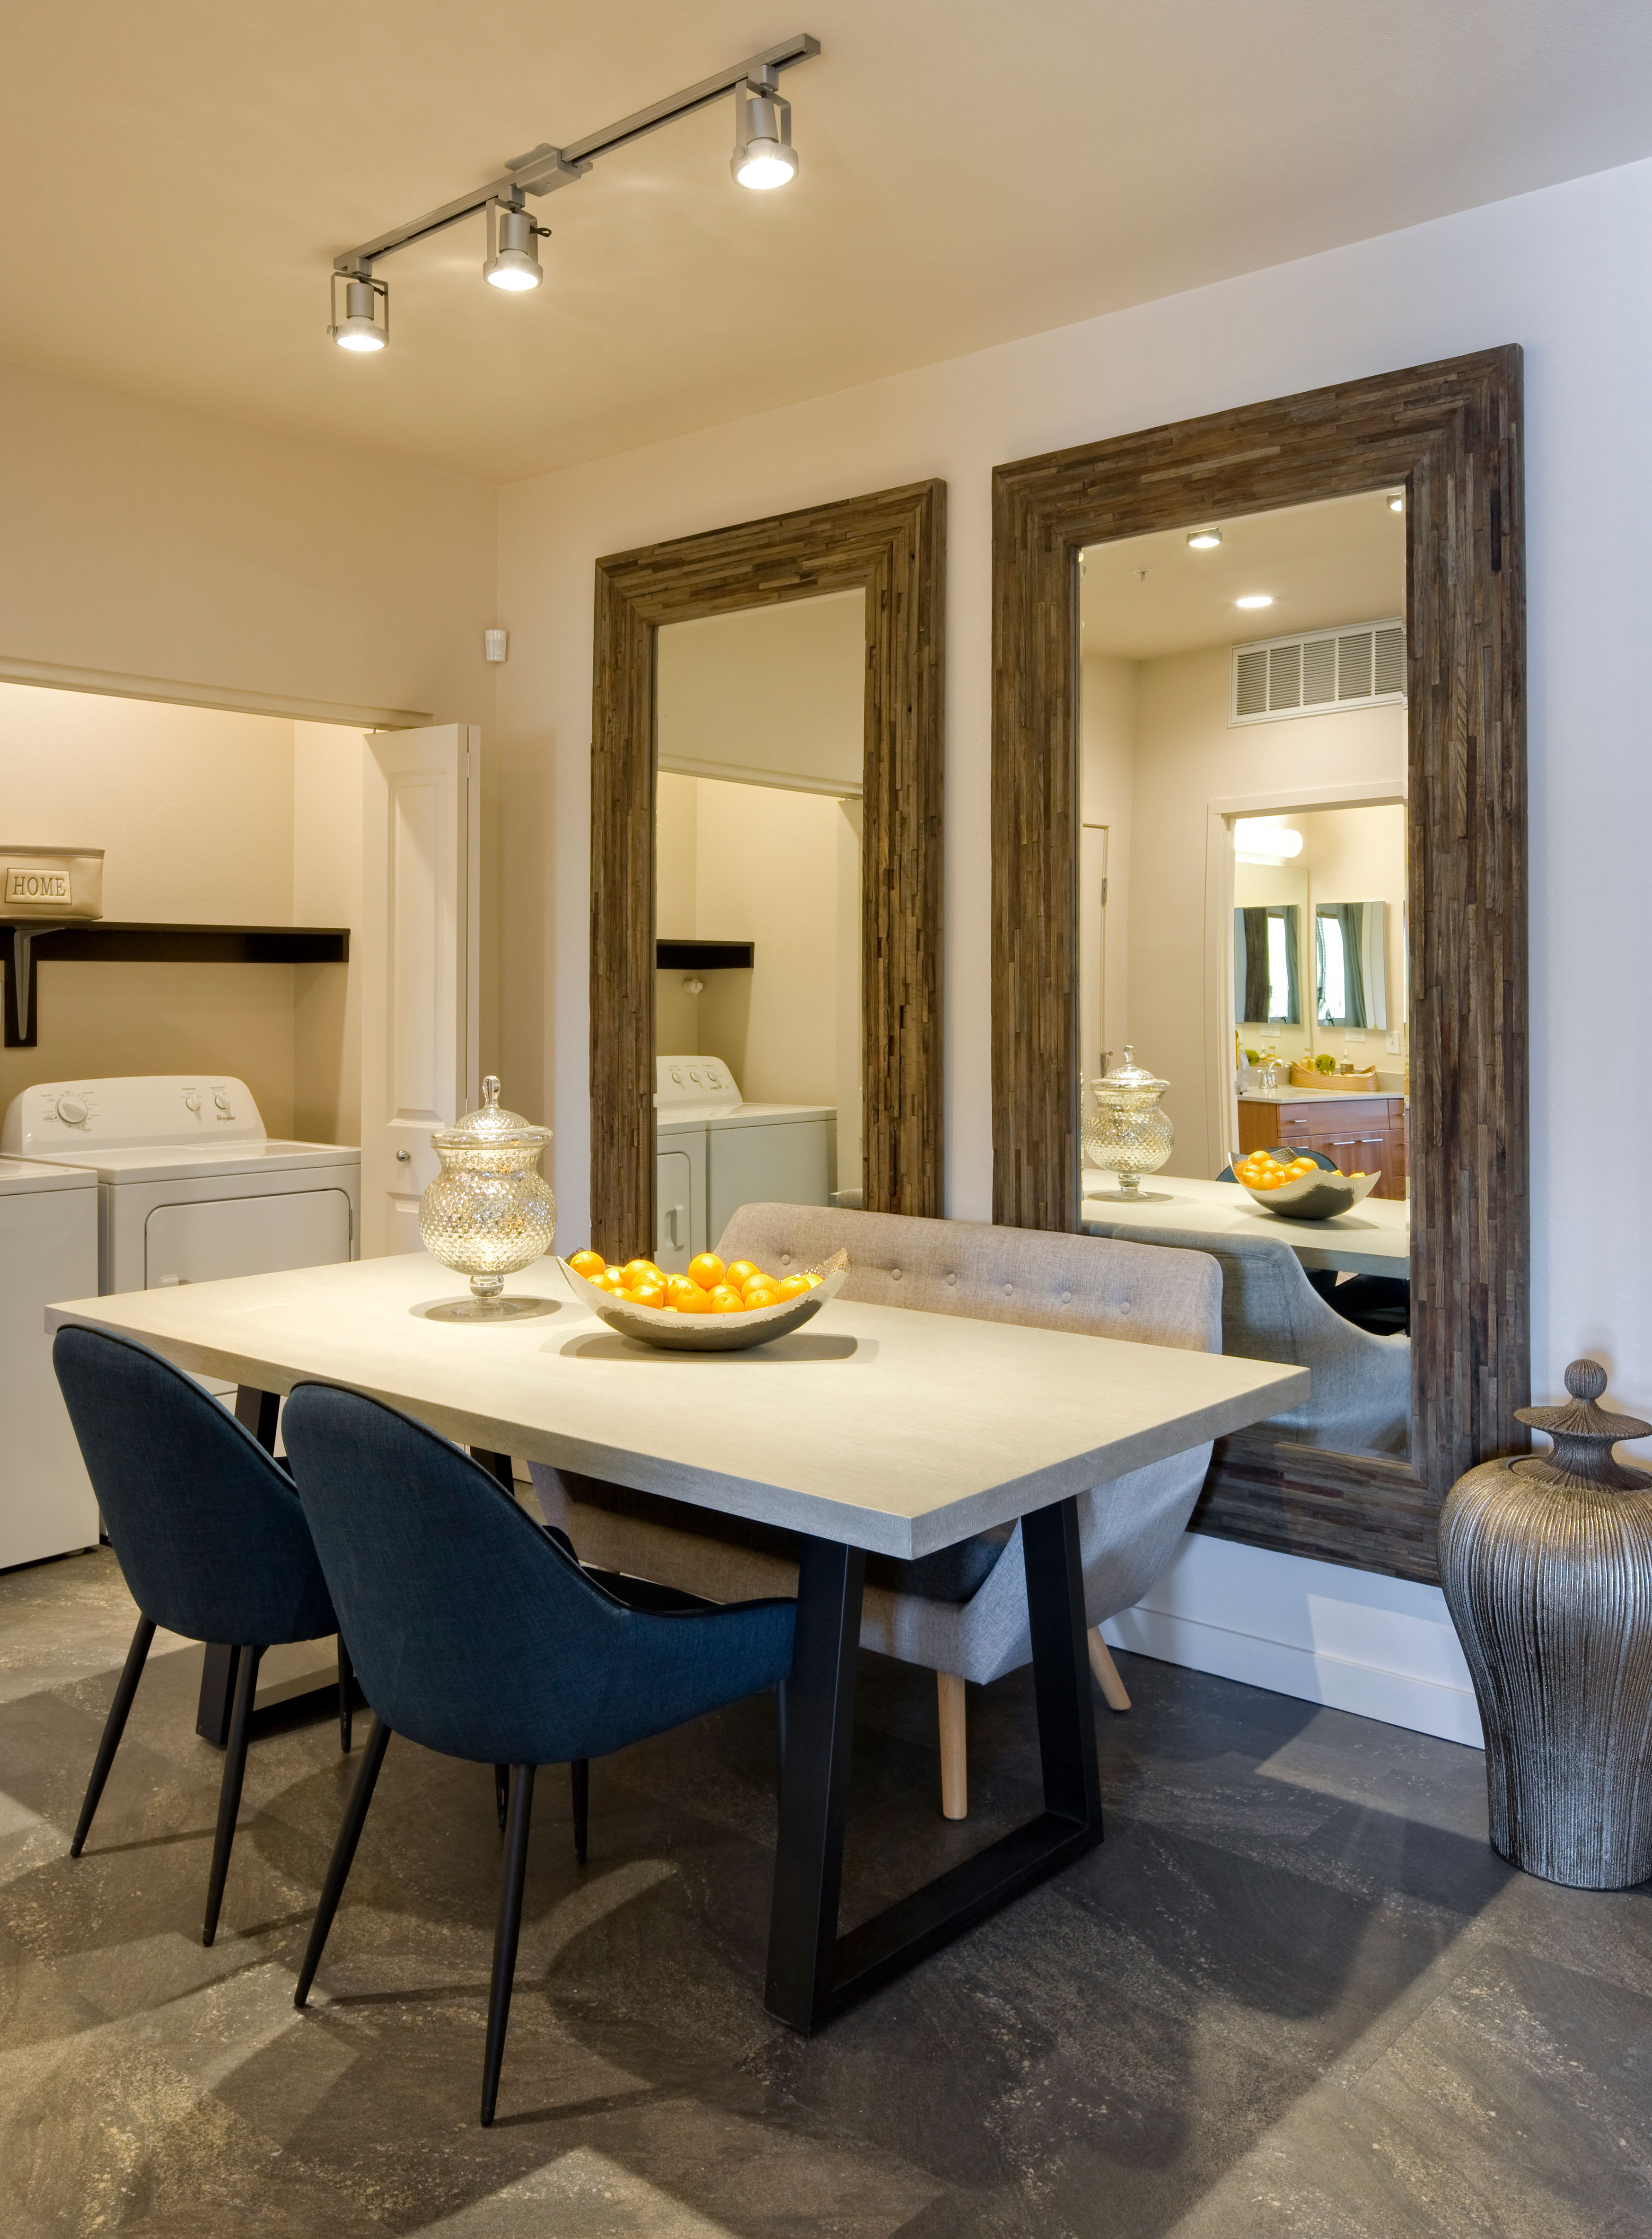 Modern decor in a model home's living area at Olympus Alameda in Albuquerque, New Mexico